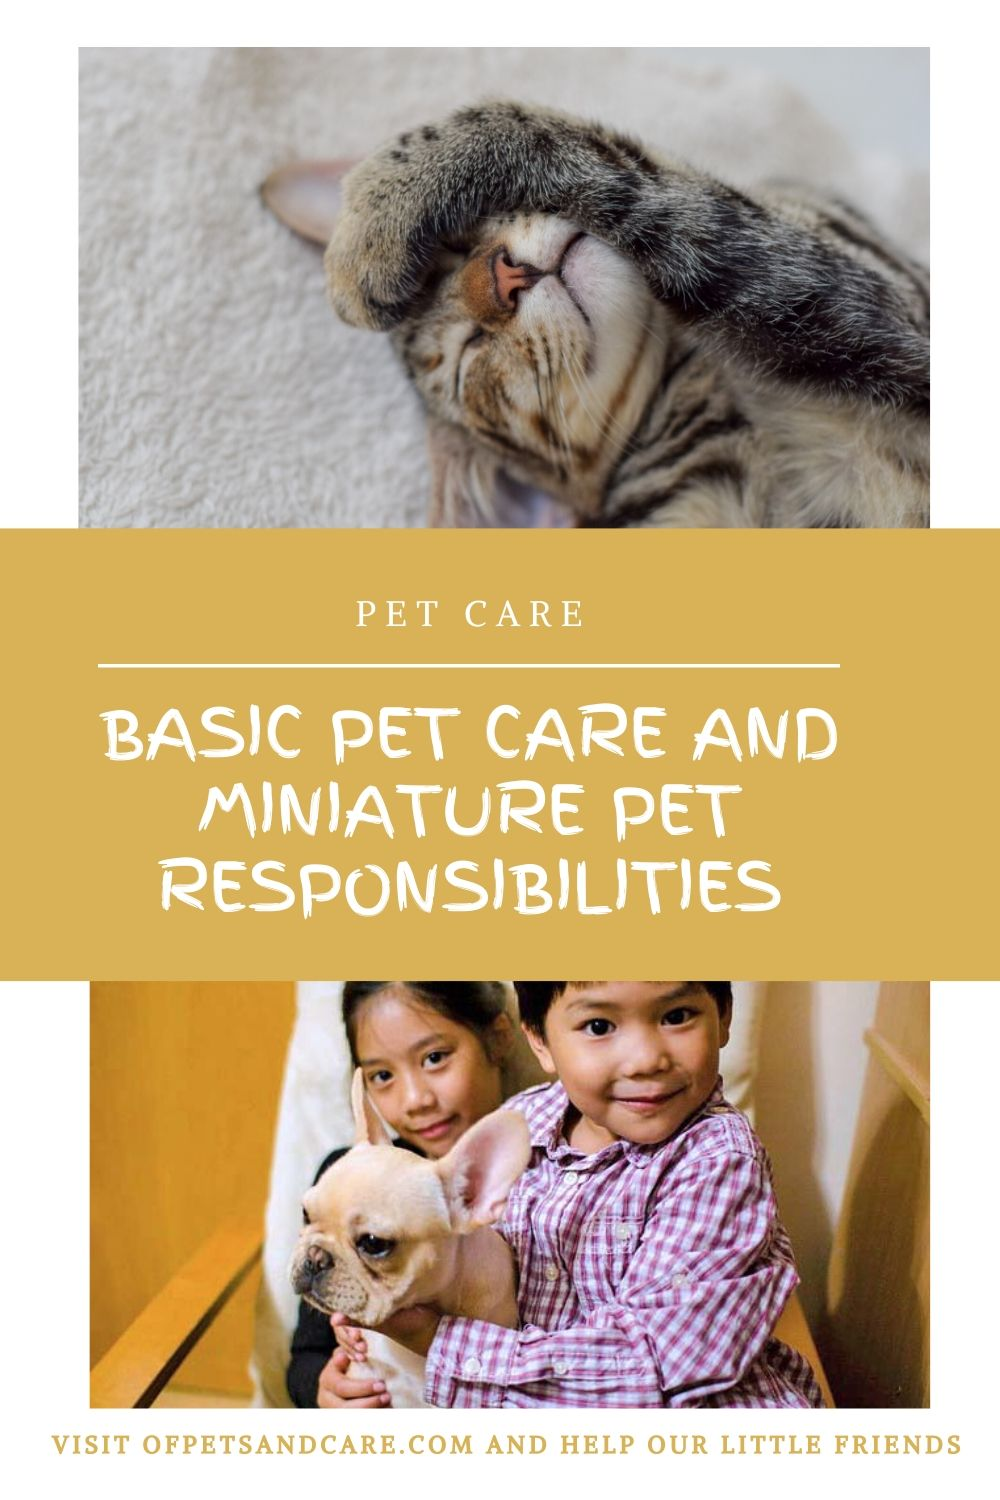 Basic Pet Care and Miniature Pet Responsibilities, kids and pets